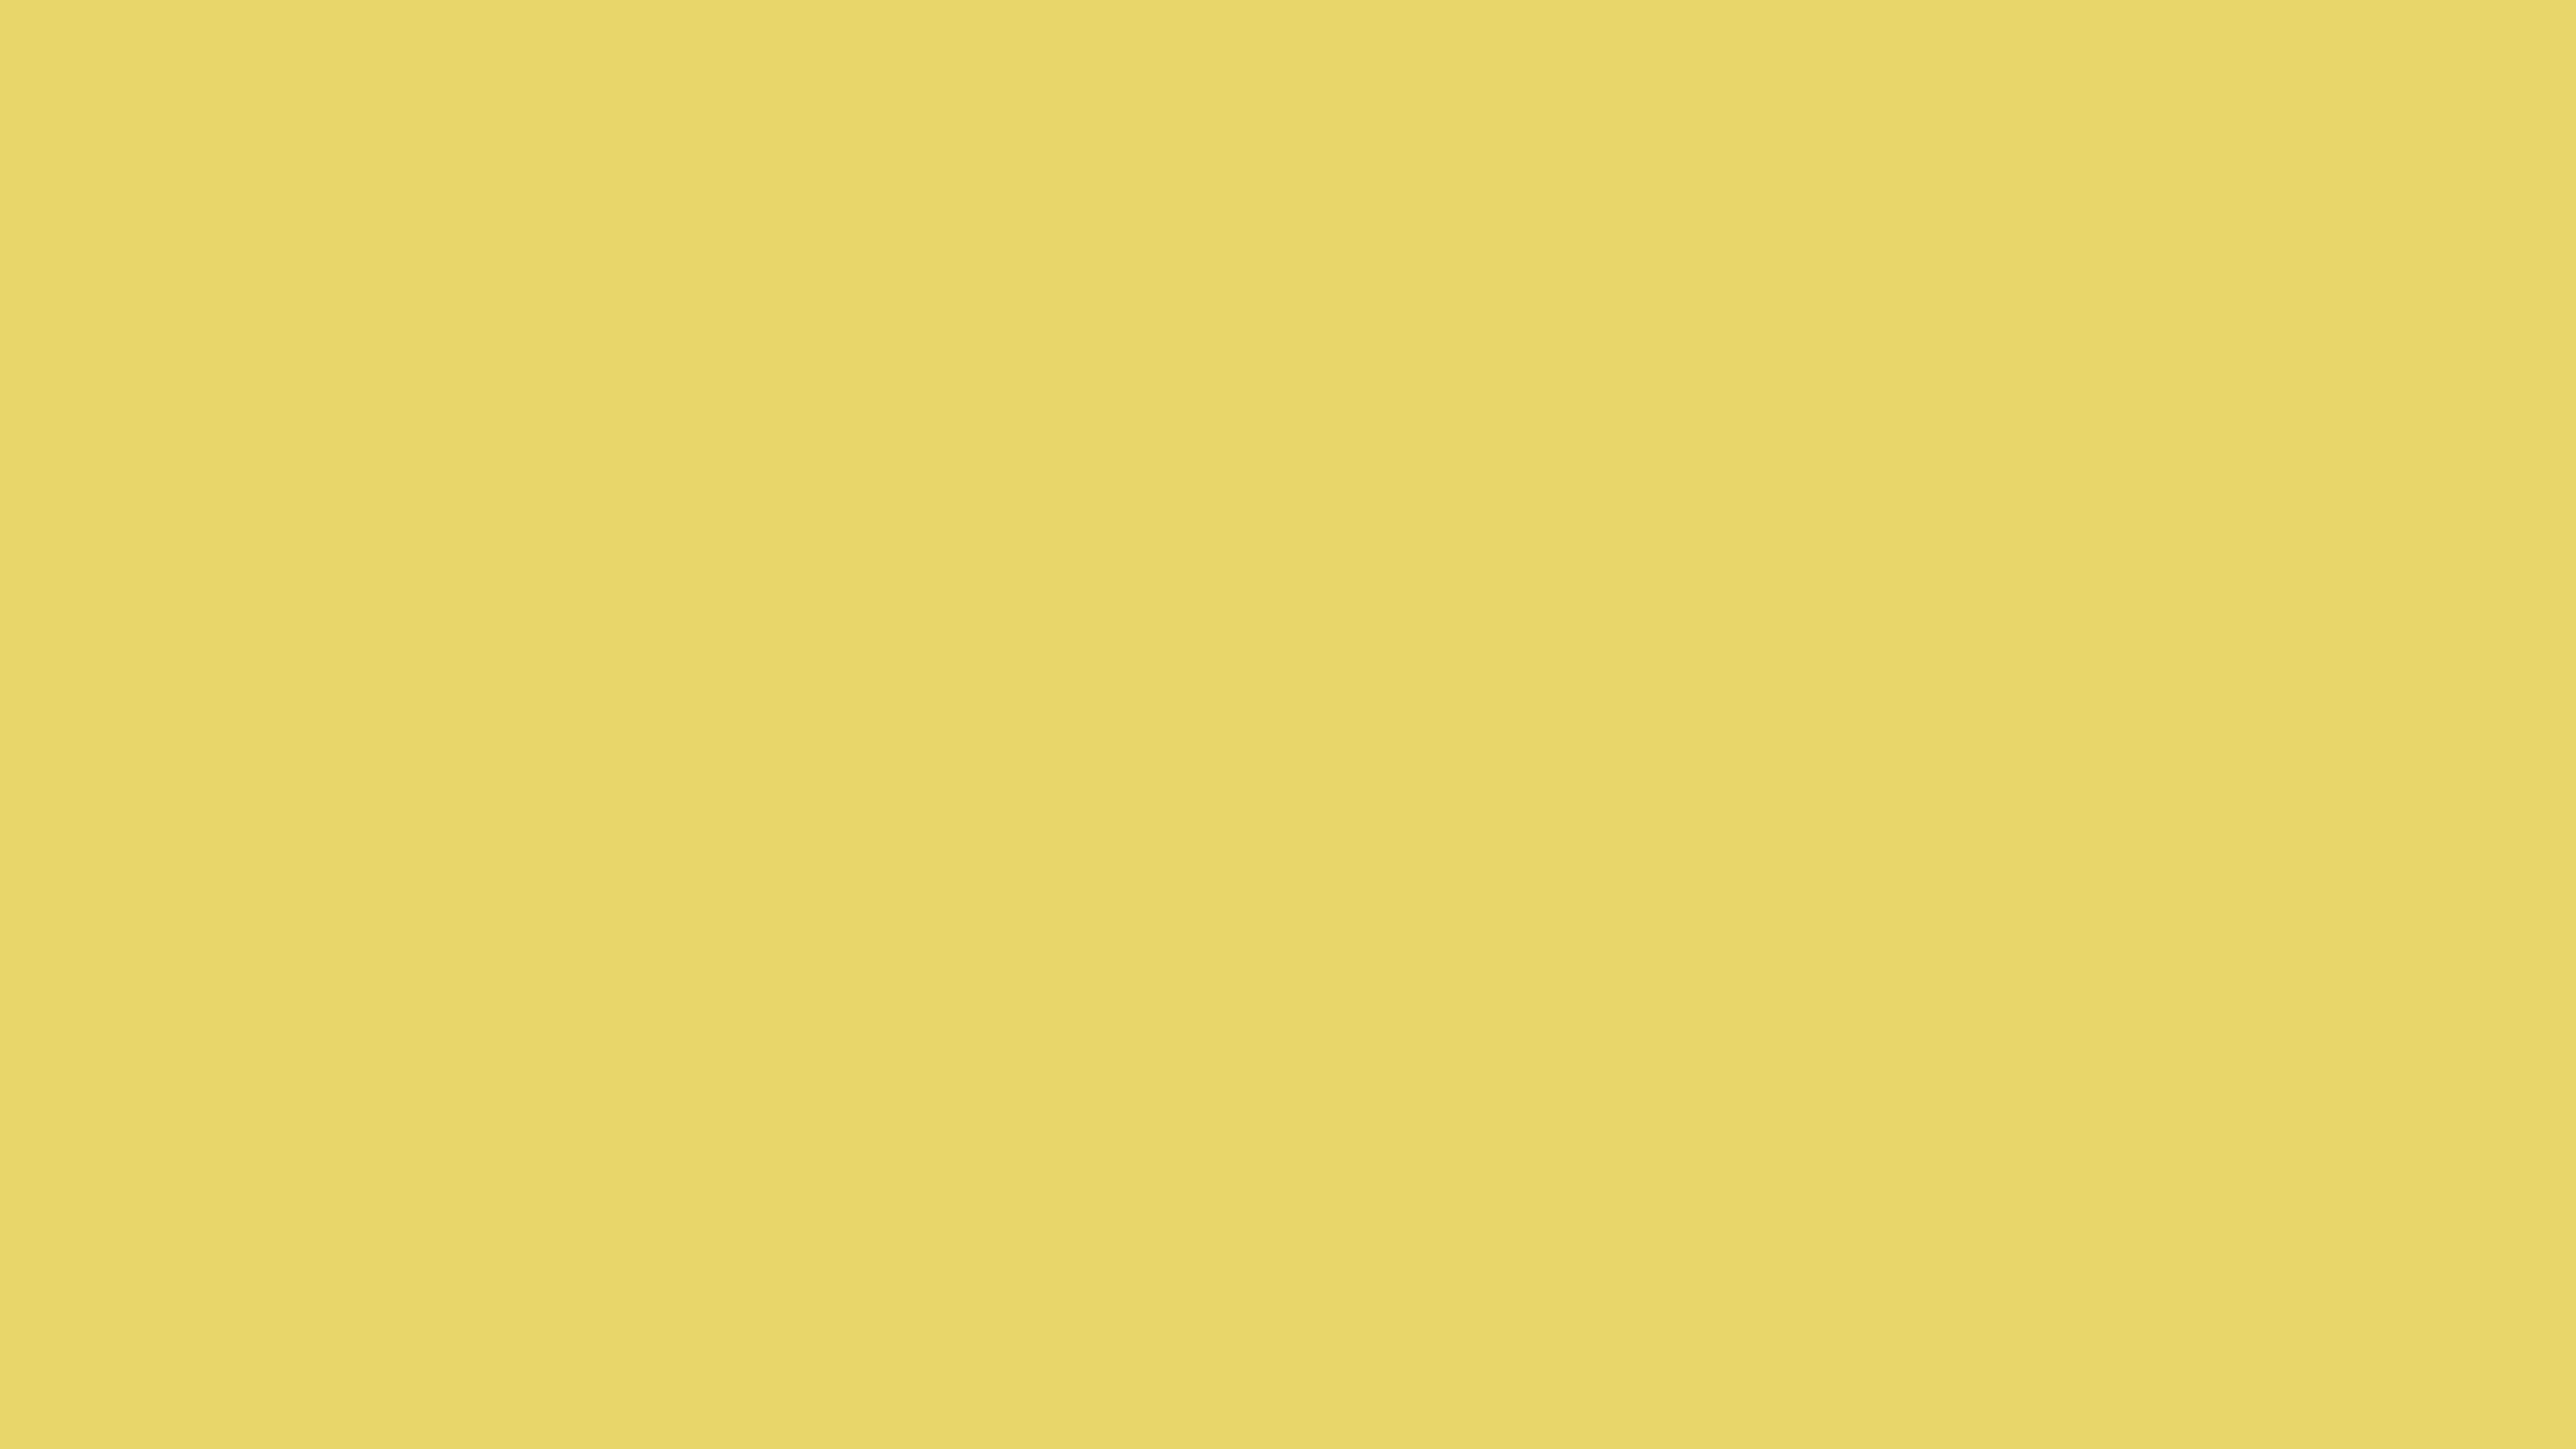 5120x2880 Arylide Yellow Solid Color Background